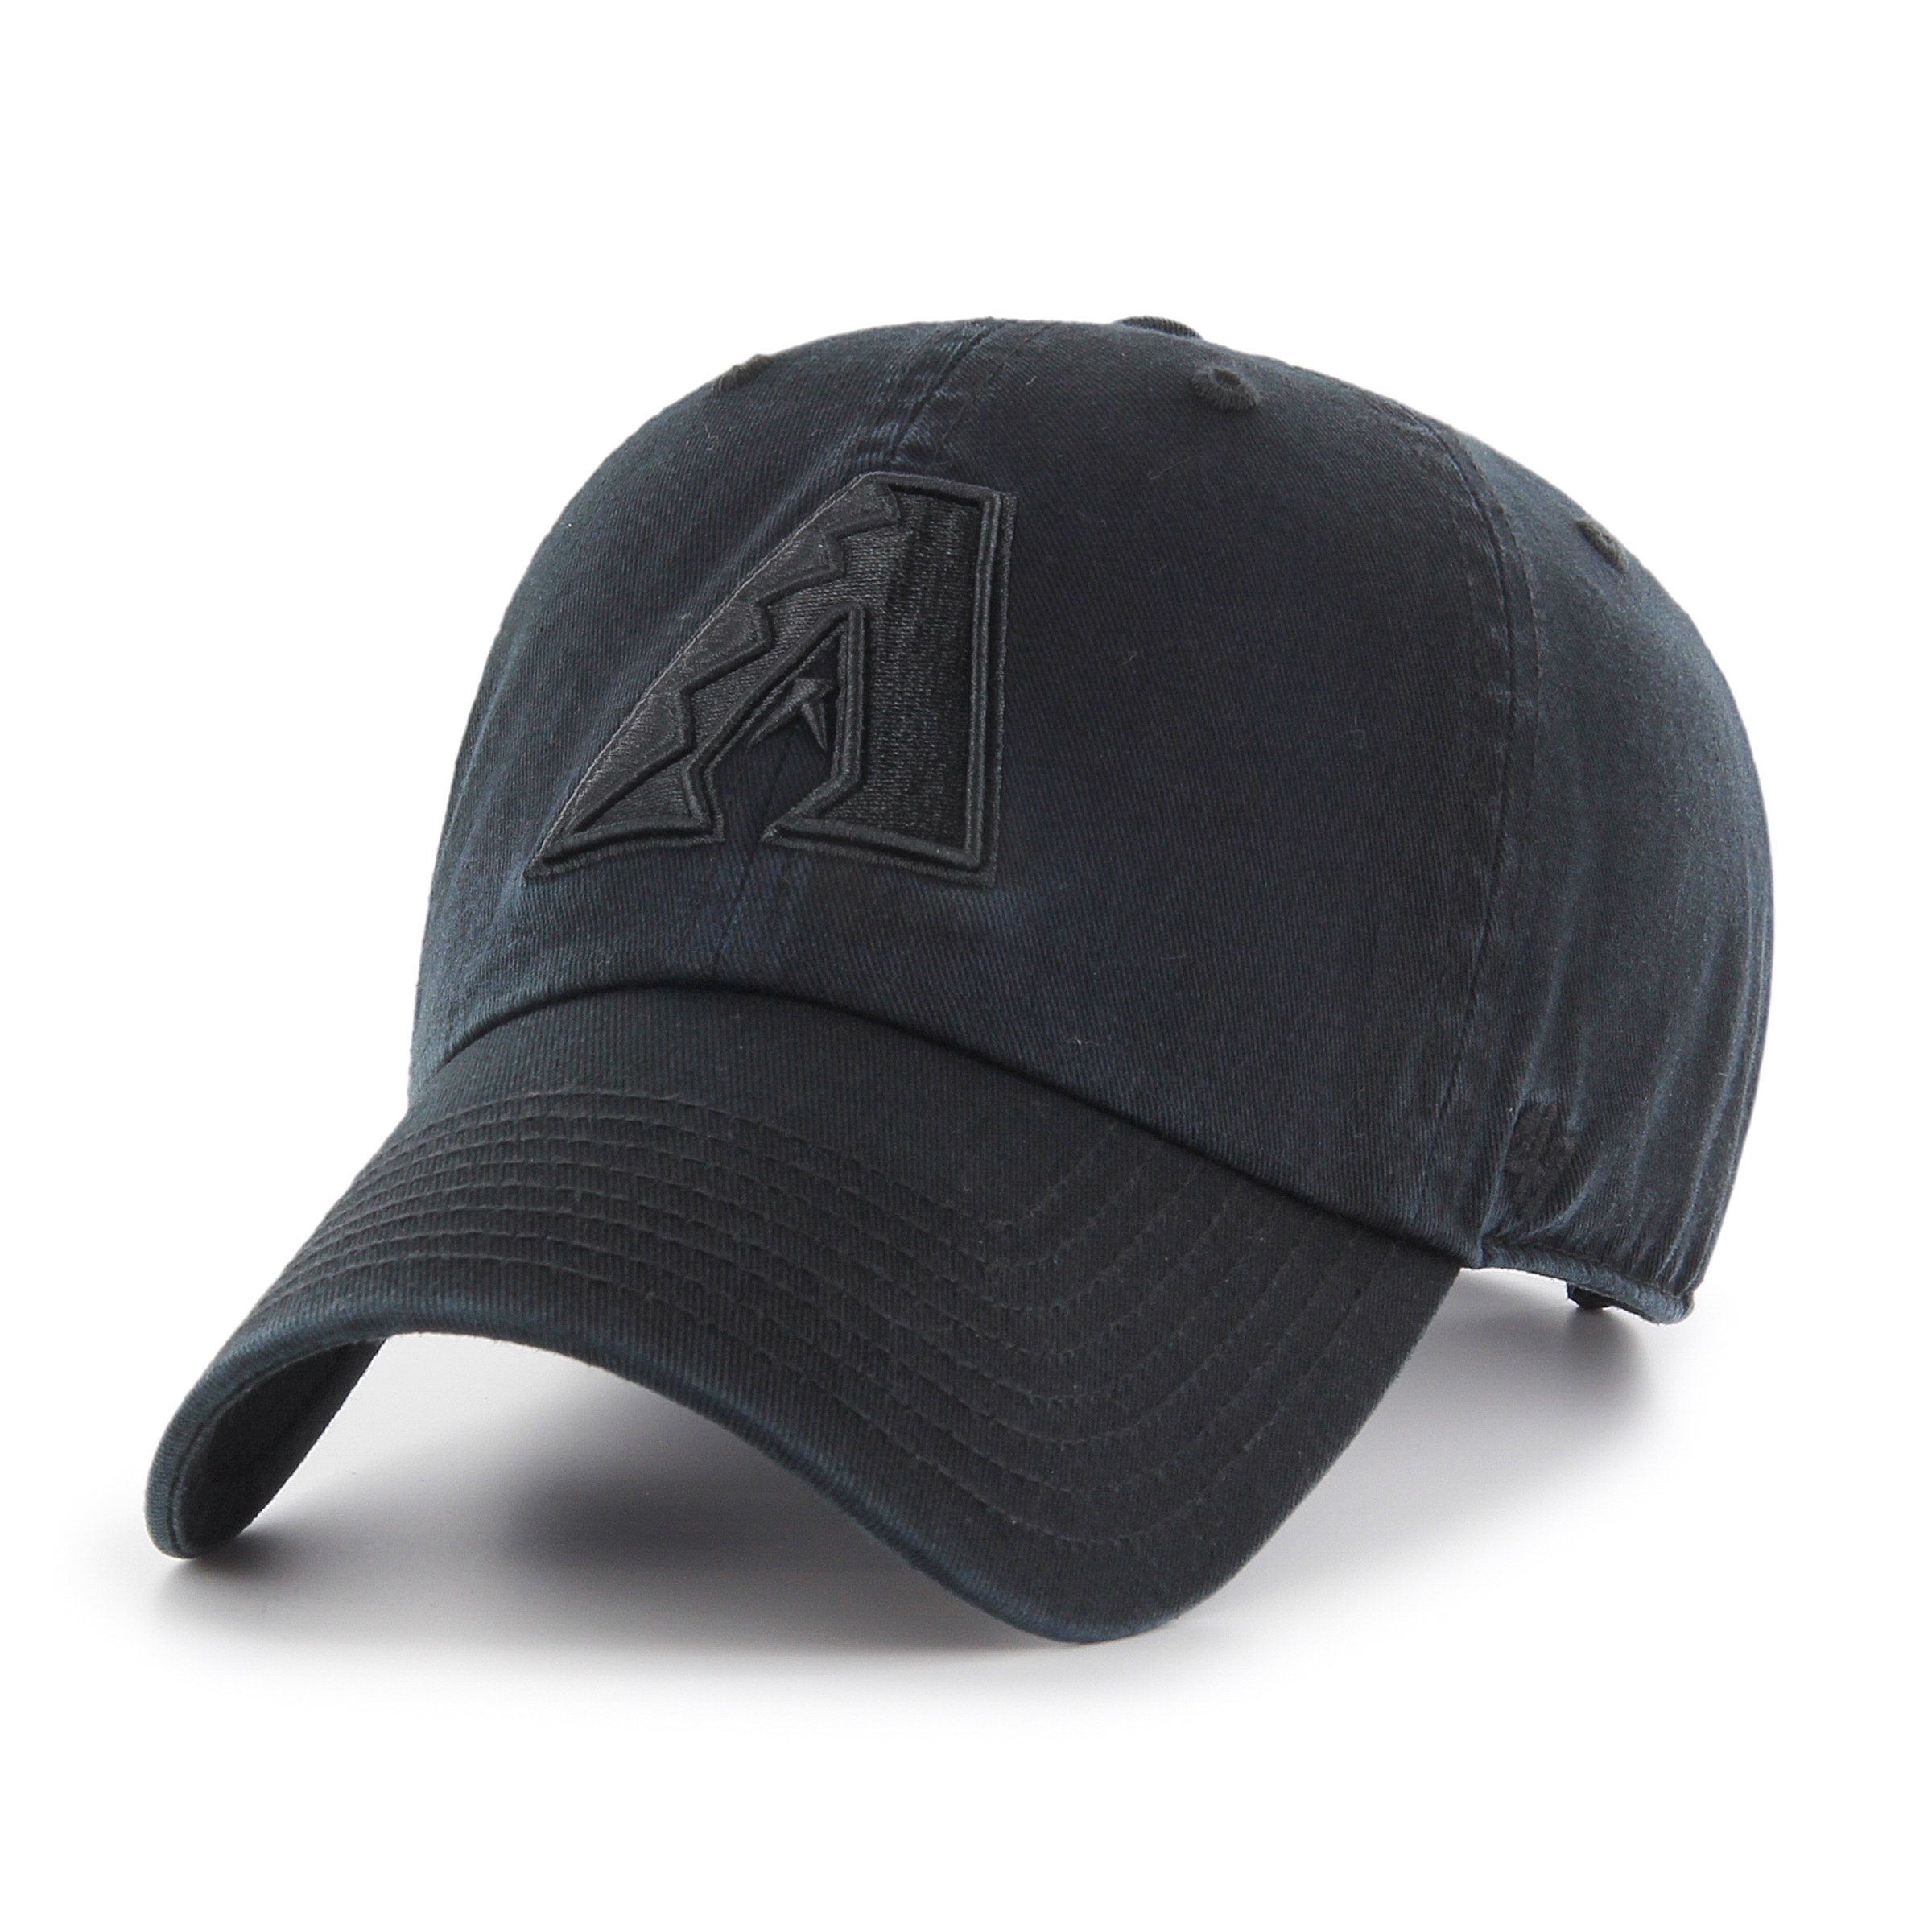 MLB Arizona Diamondbacks BoB '47 Clean Up - Black